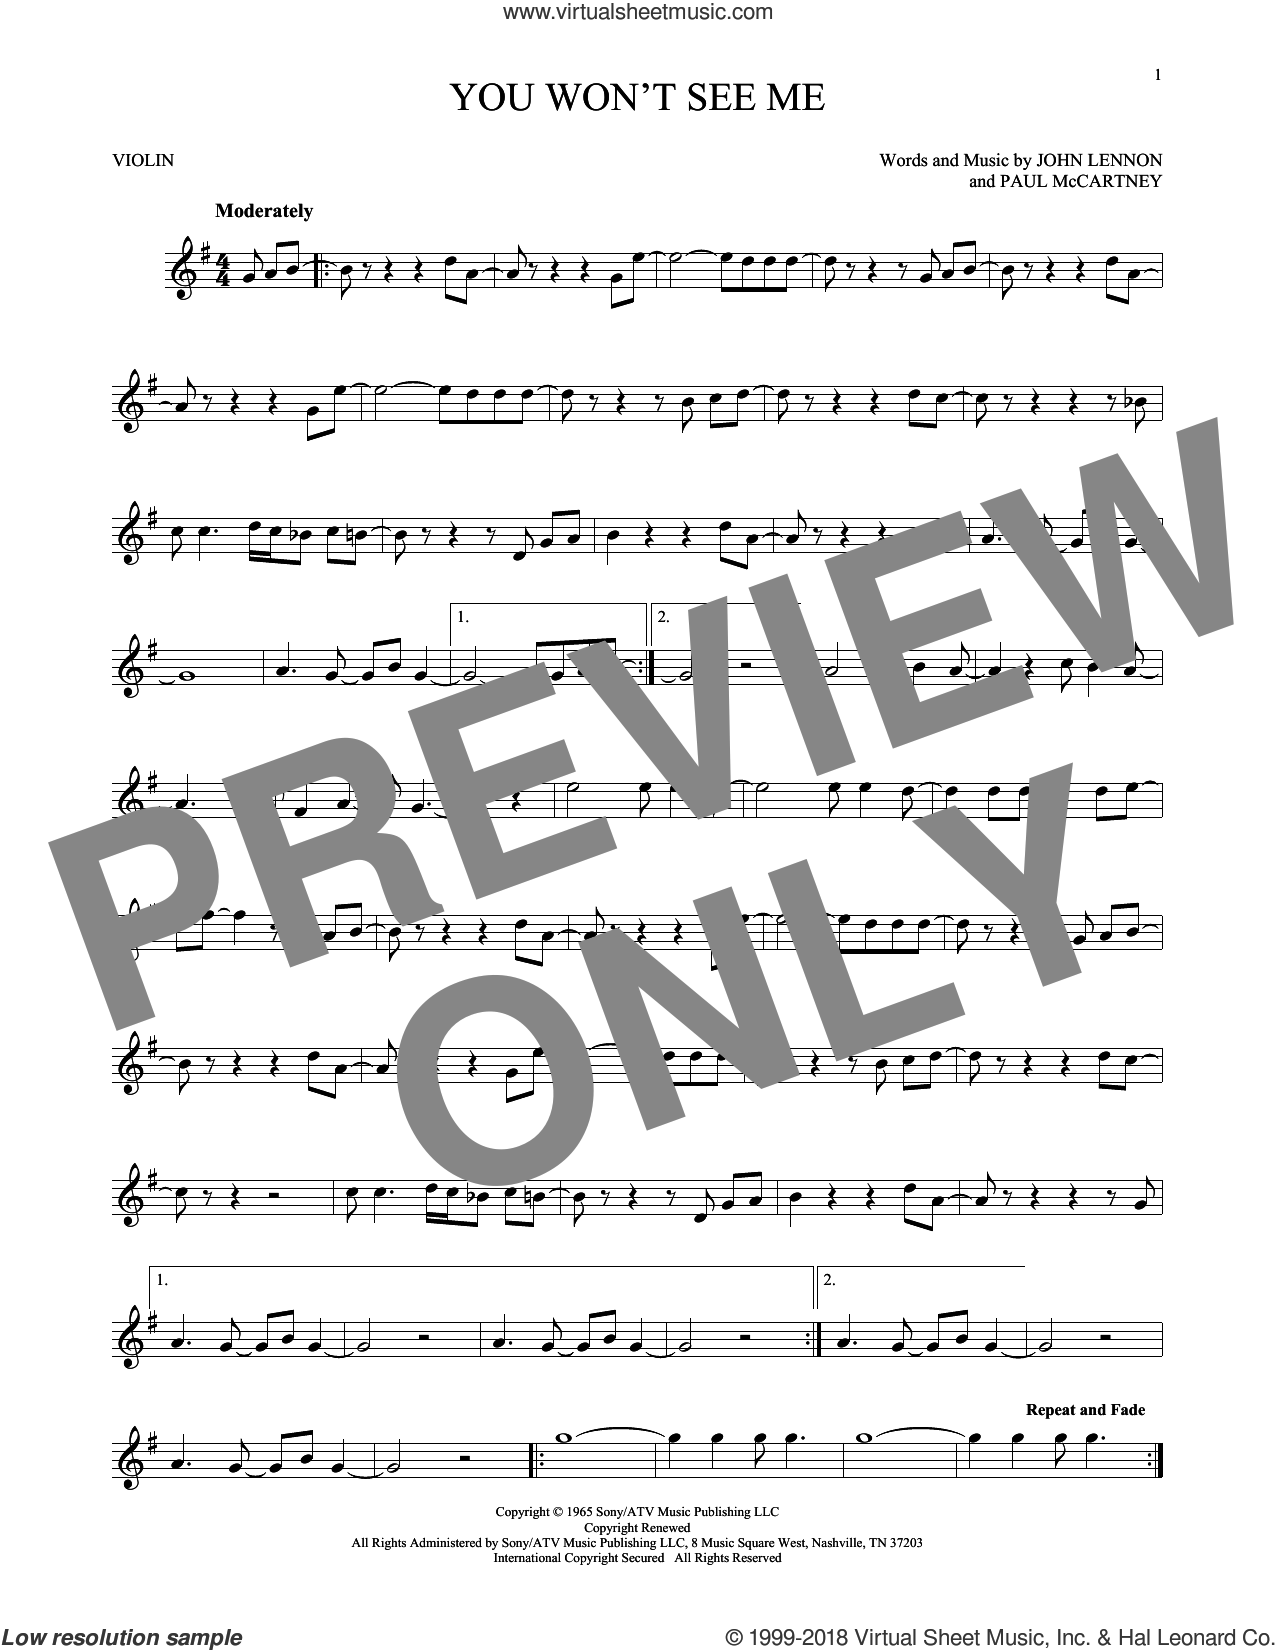 You Won't See Me sheet music for violin solo by The Beatles, John Lennon and Paul McCartney, intermediate skill level